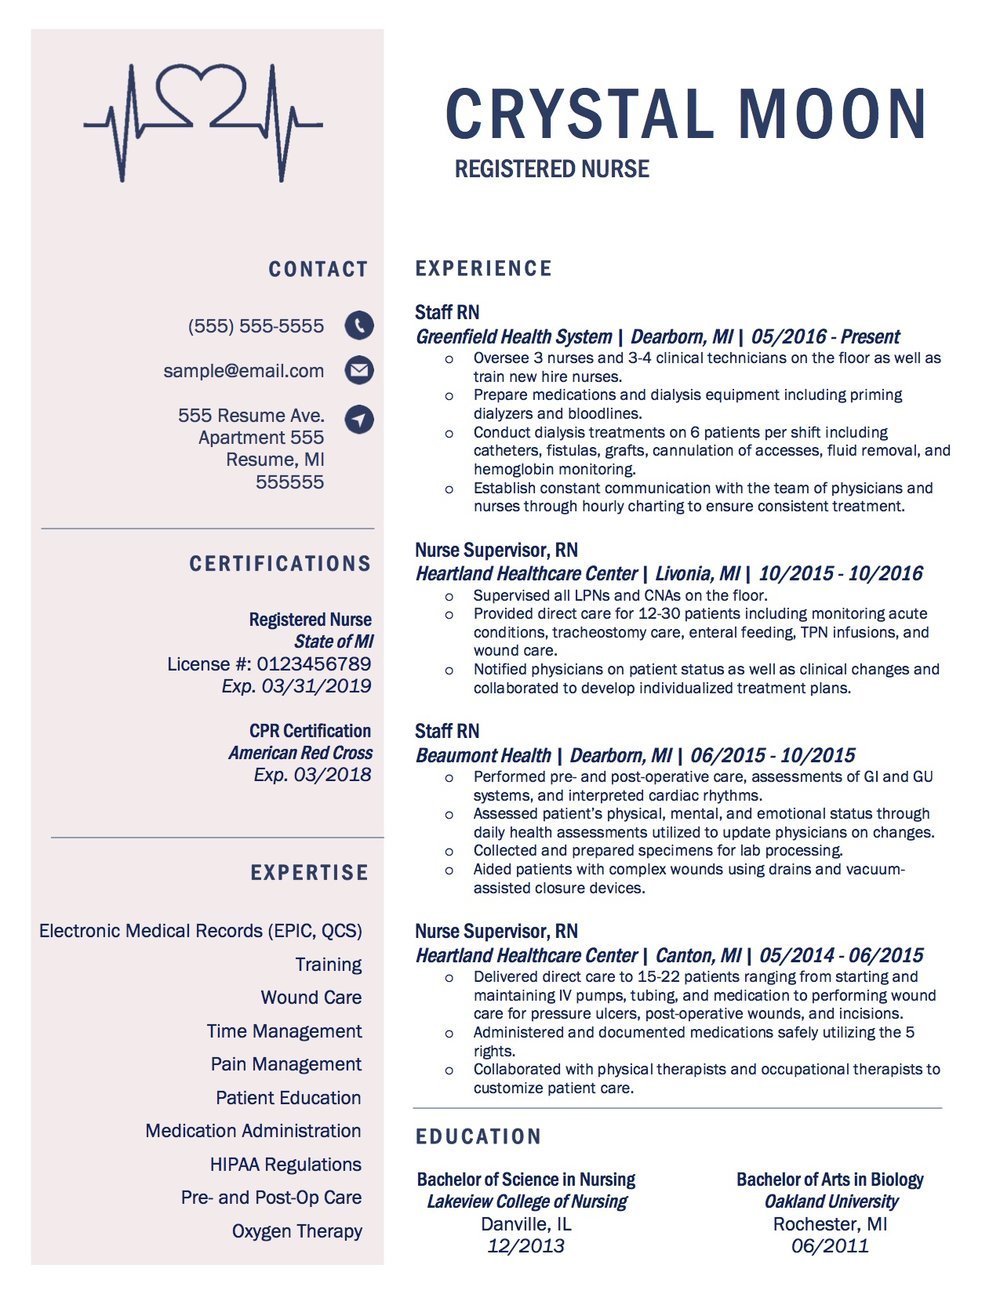 sample resume biology major samples u2014 layfield resume consulting. Resume Example. Resume CV Cover Letter